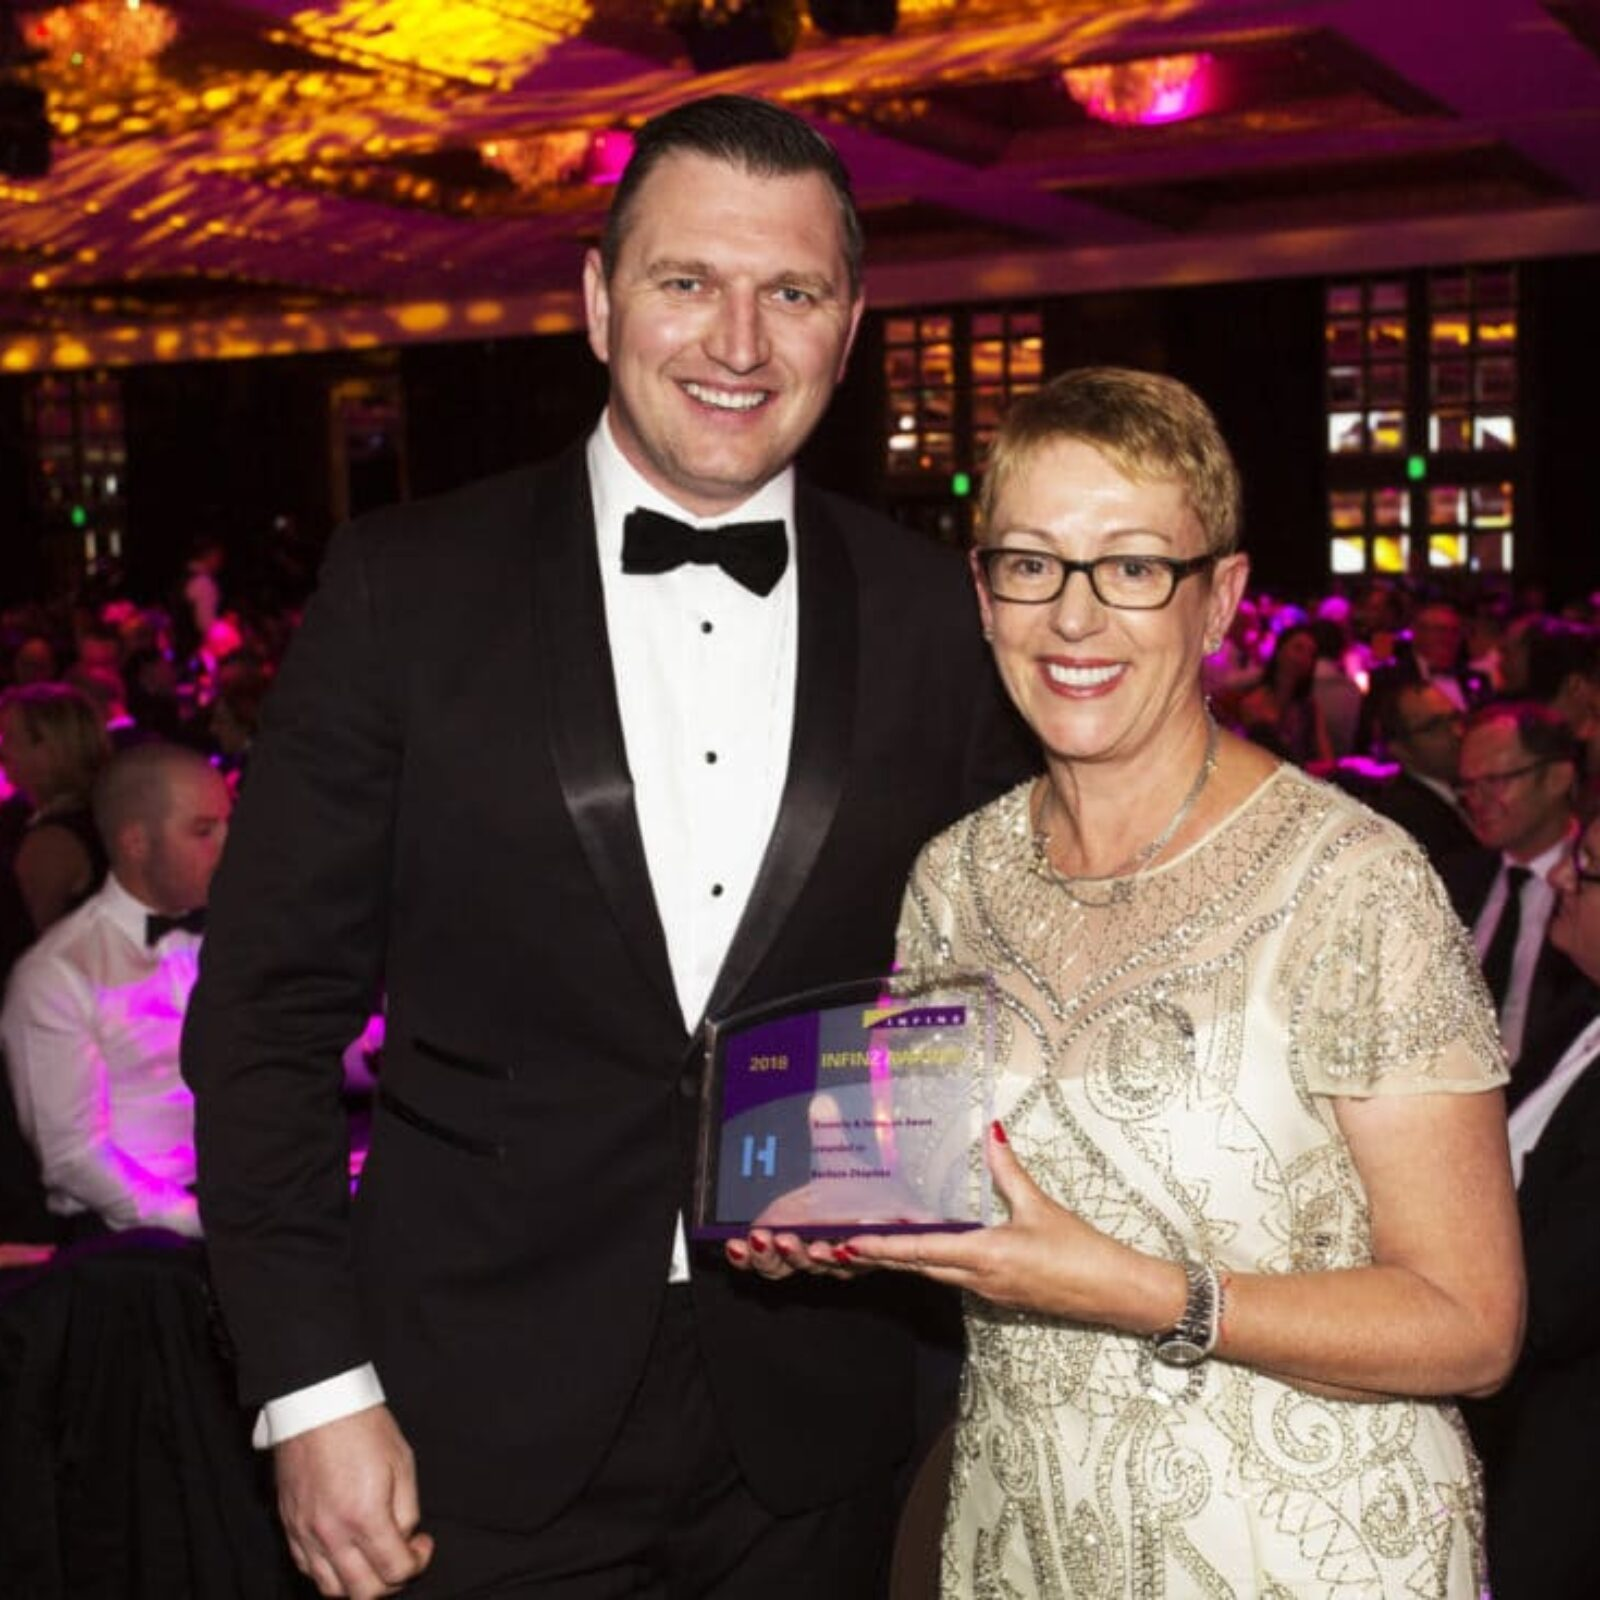 INFINZ Awards 2019 – Hunter Campbell Diversity and Inclusion Award. Call for submissions, due 21 February 2019